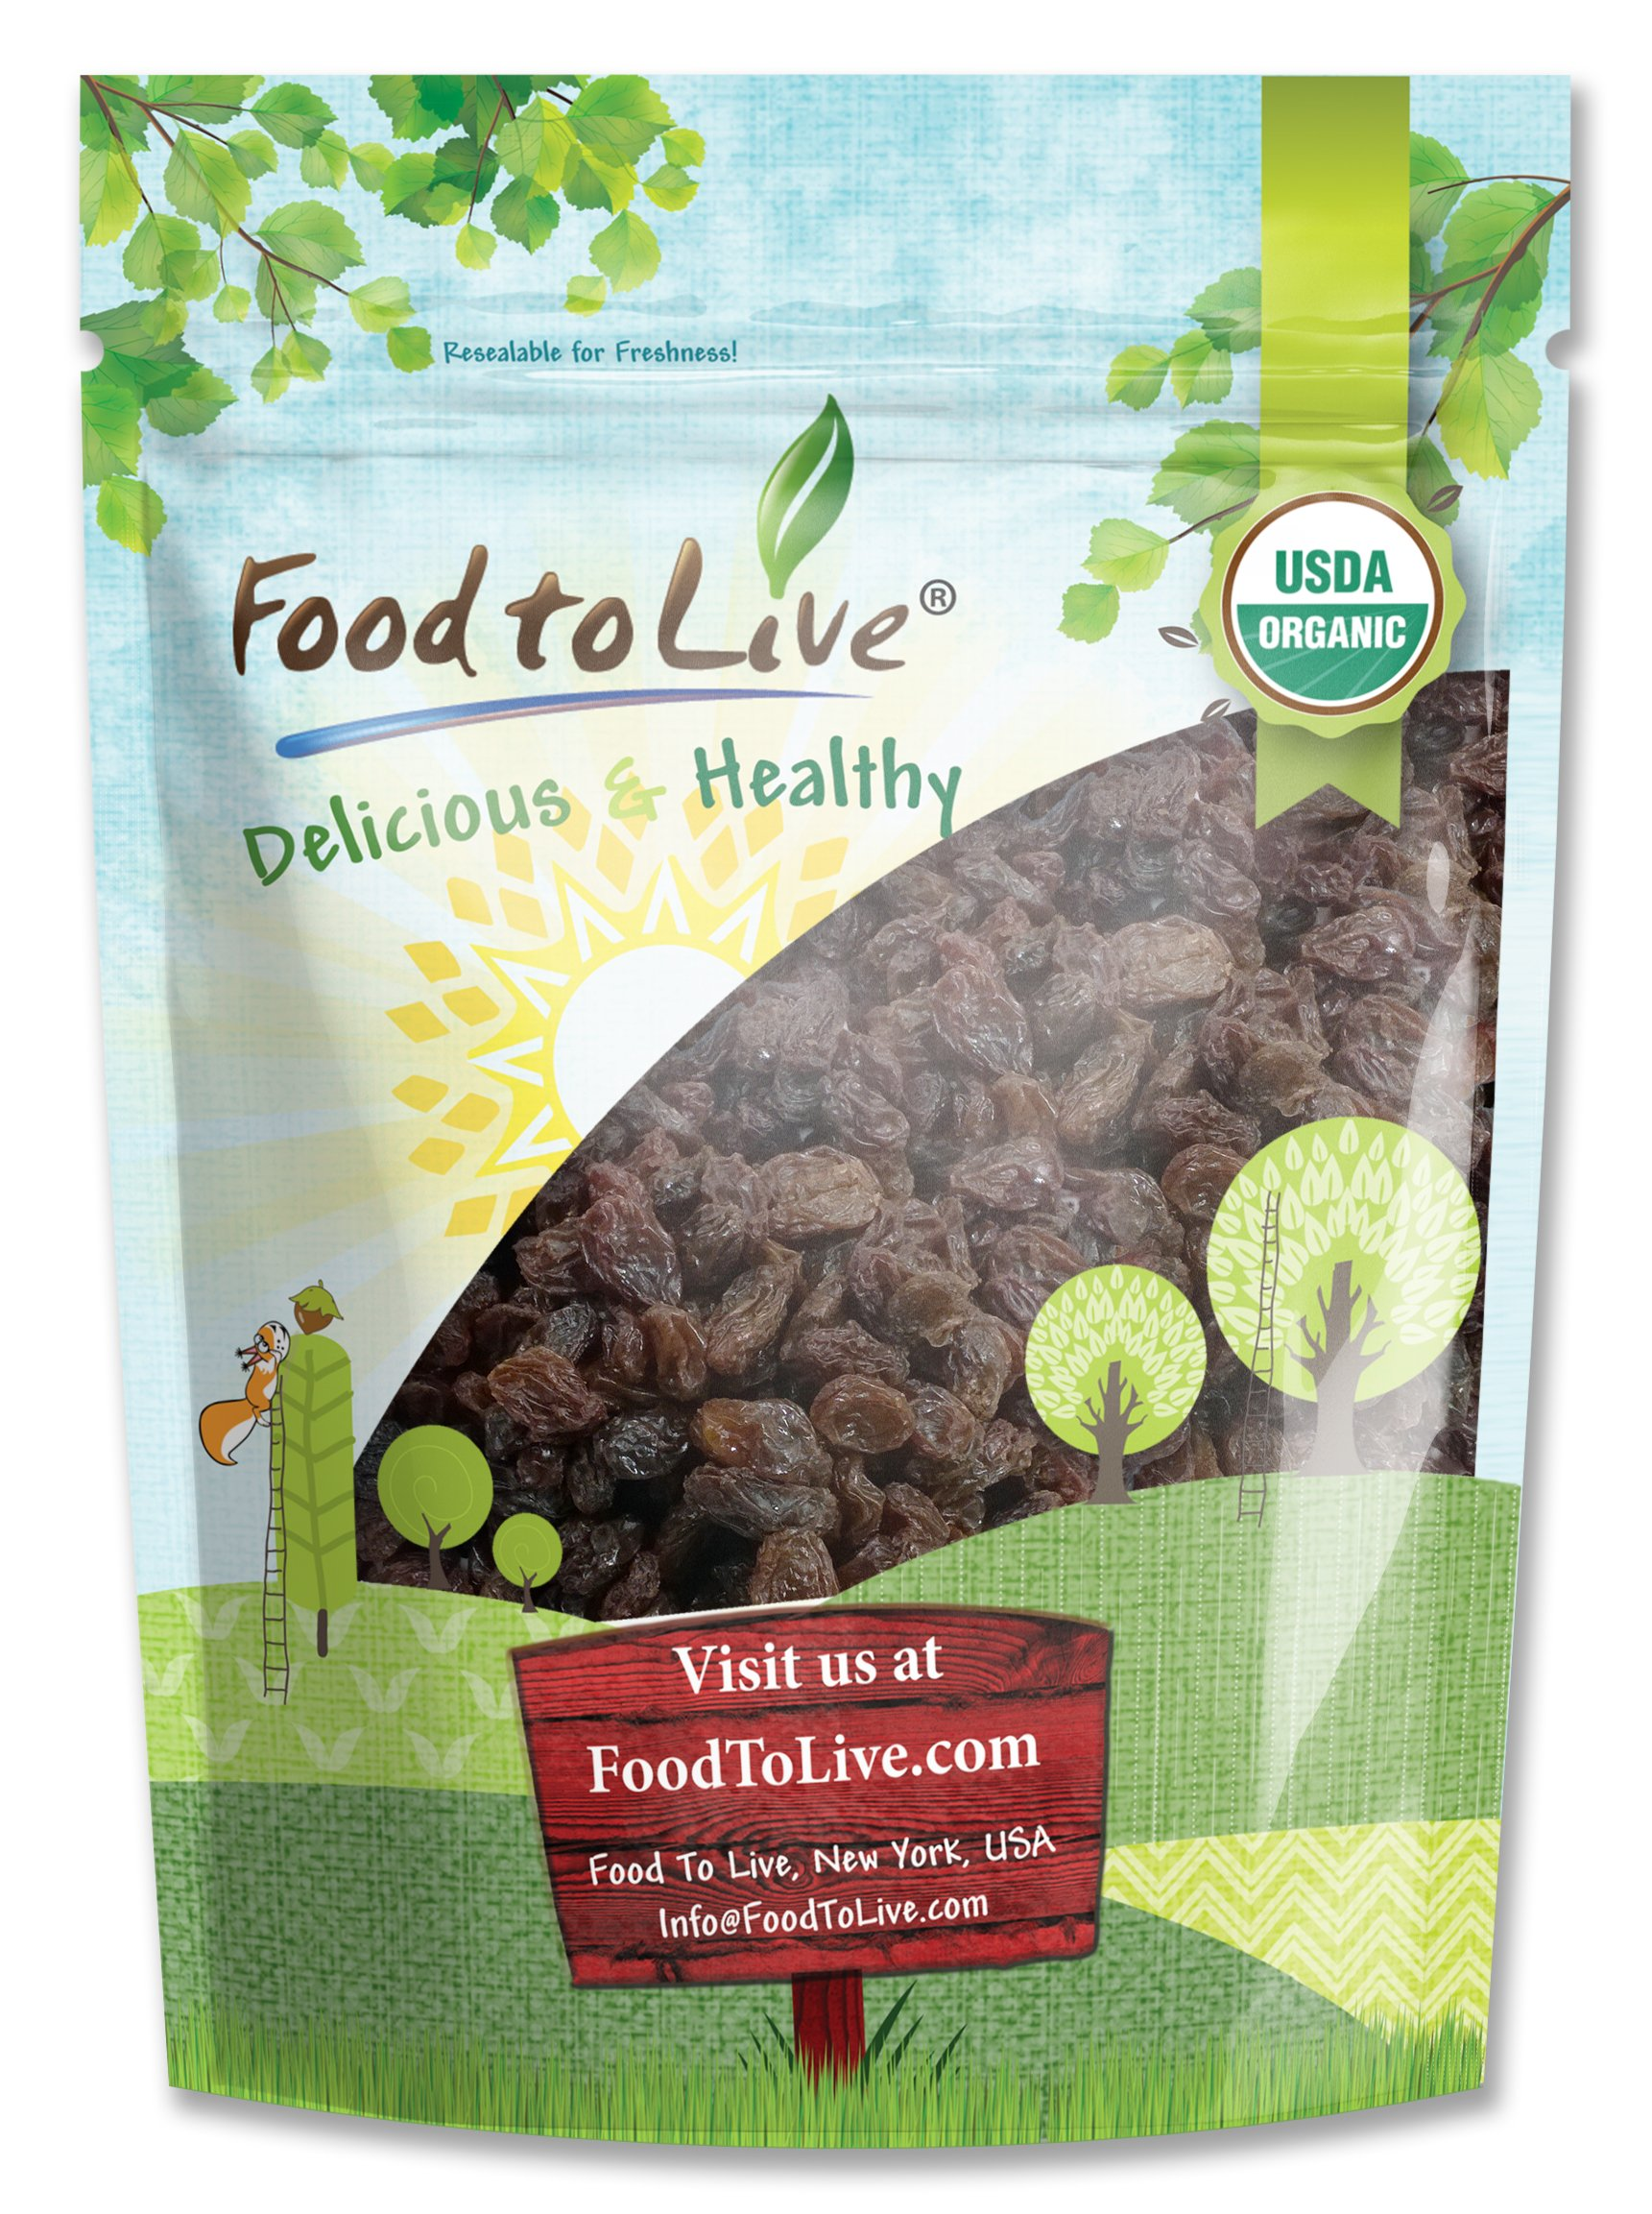 Organic California Thompson Seedless Raisins by Food To Live (Sun-Dried, Non-GMO, Kosher, Unsulphured, Bulk, Lightly Coated with Organic Sunflower Oil) - 4 Pounds by Food To Live